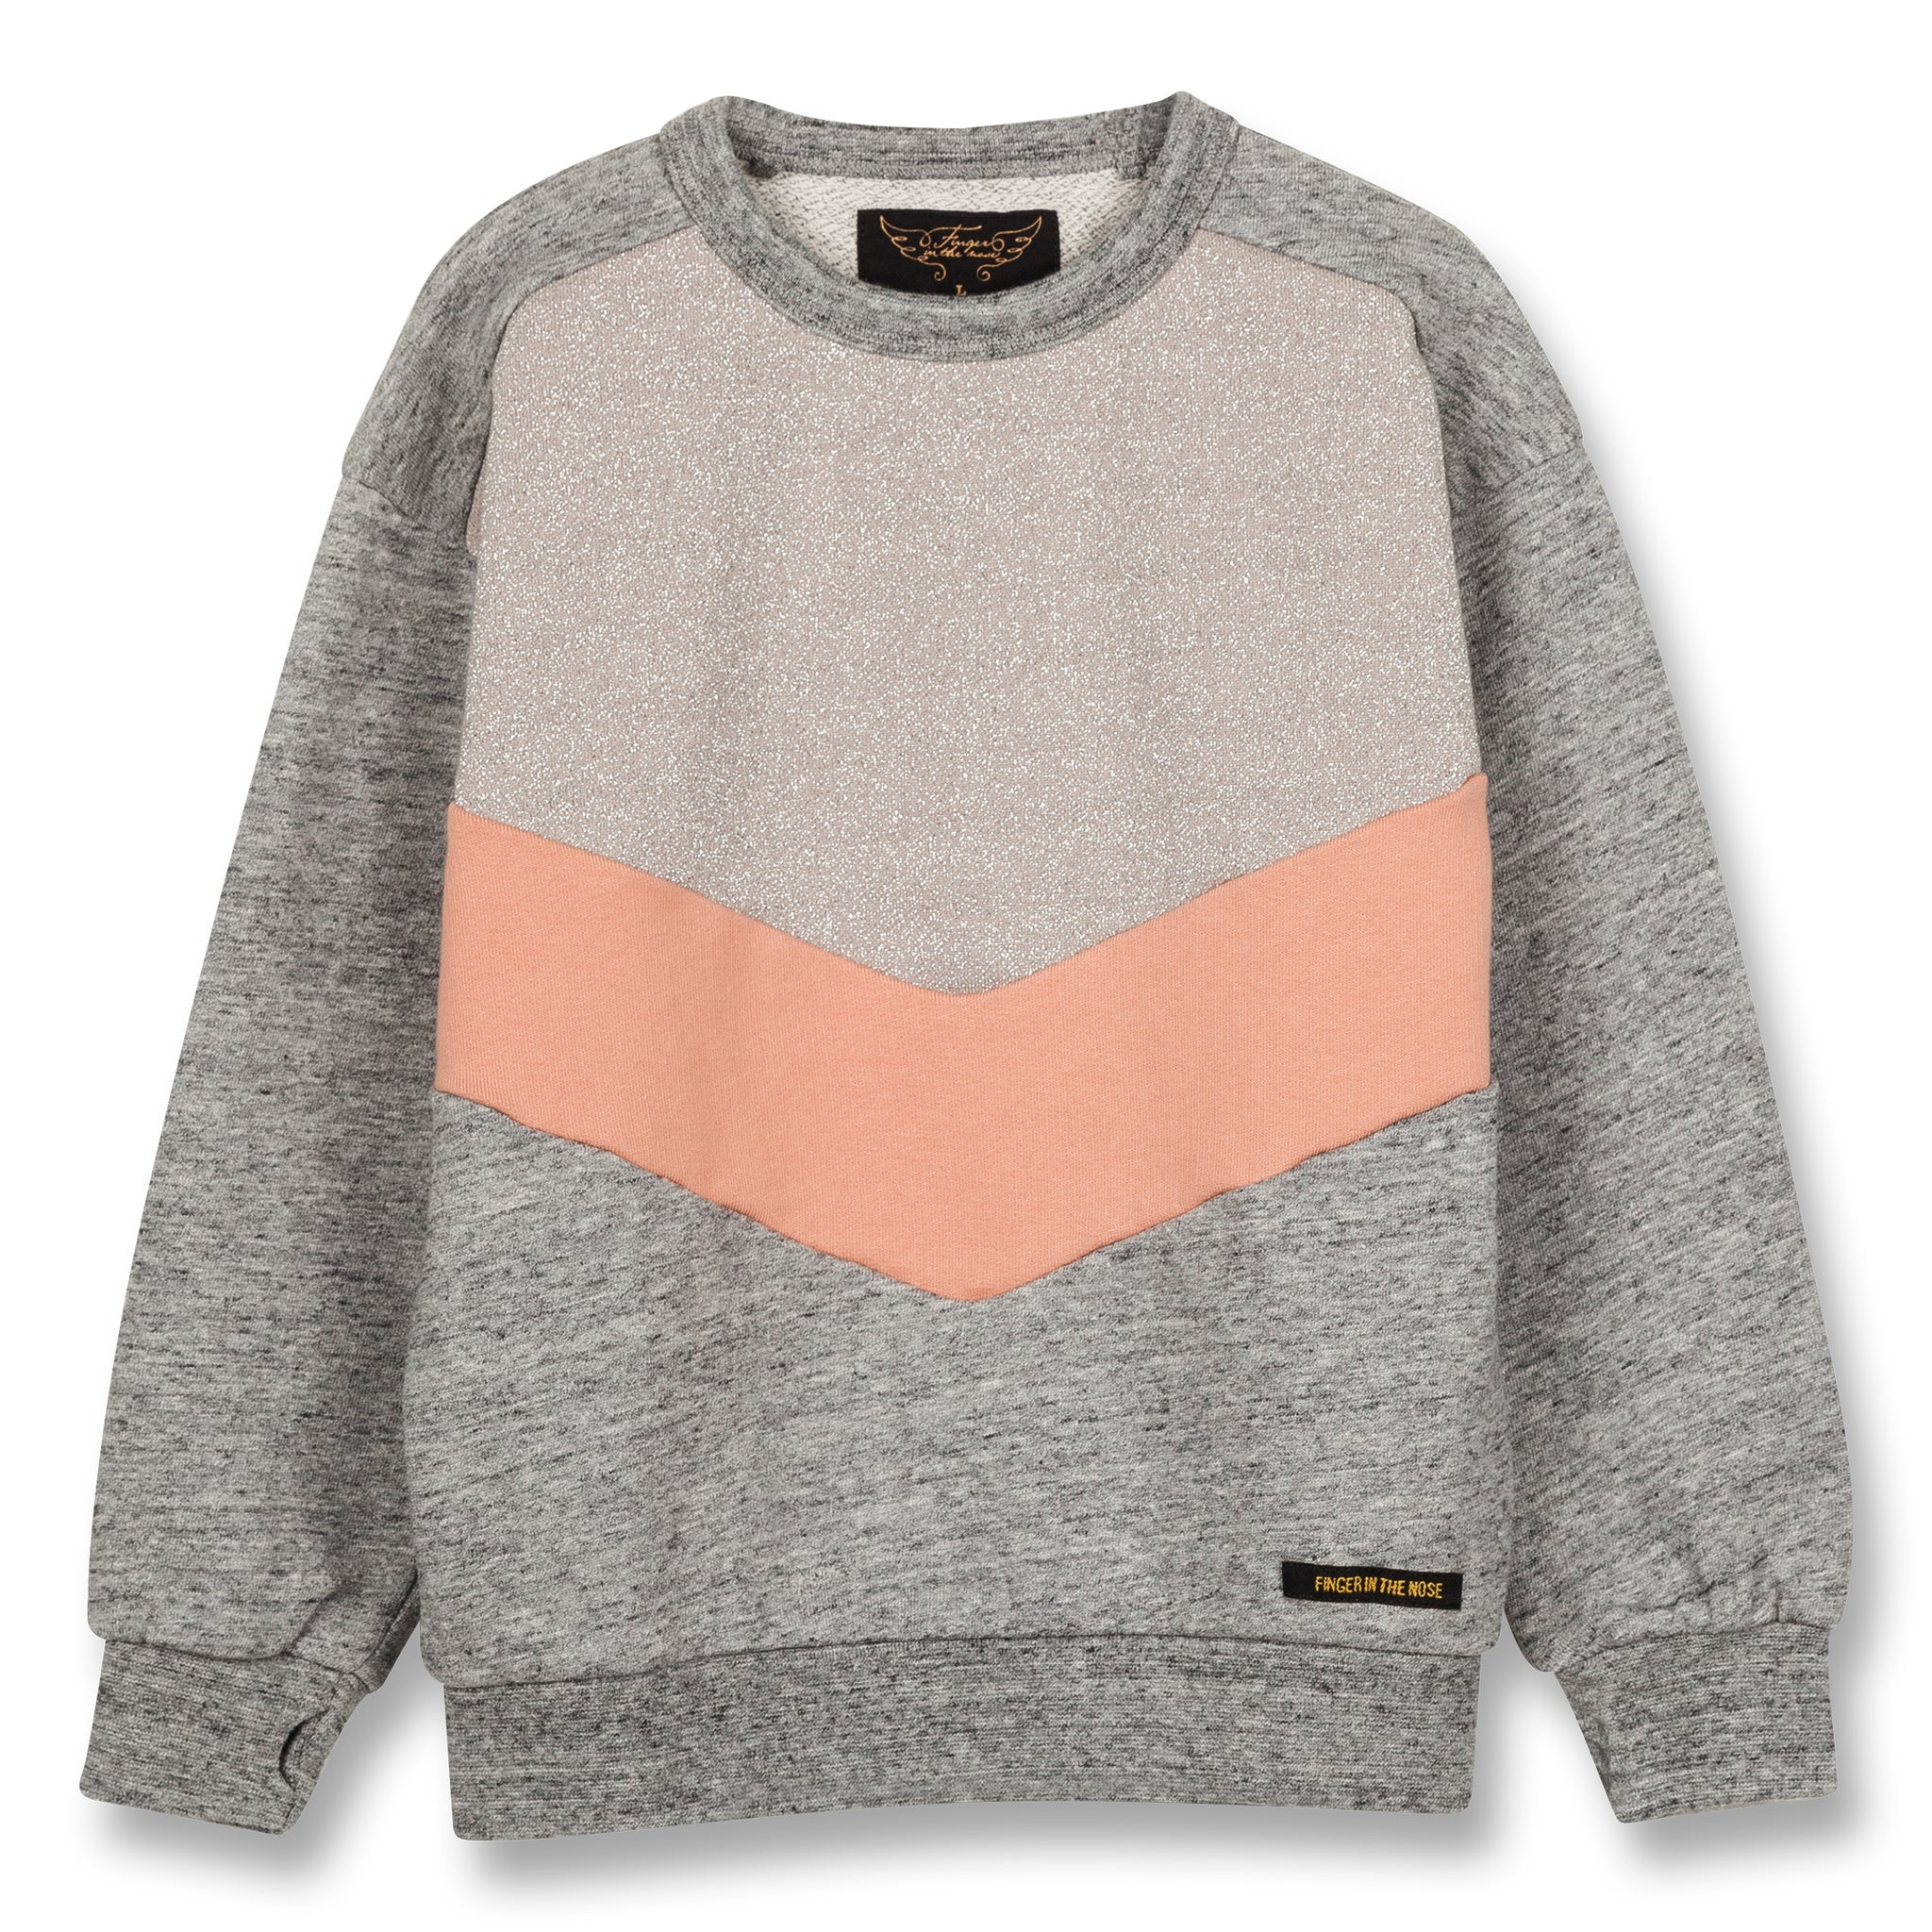 JECKY Heather Grey Colorblock - Crew Neck Sweatshirt 1